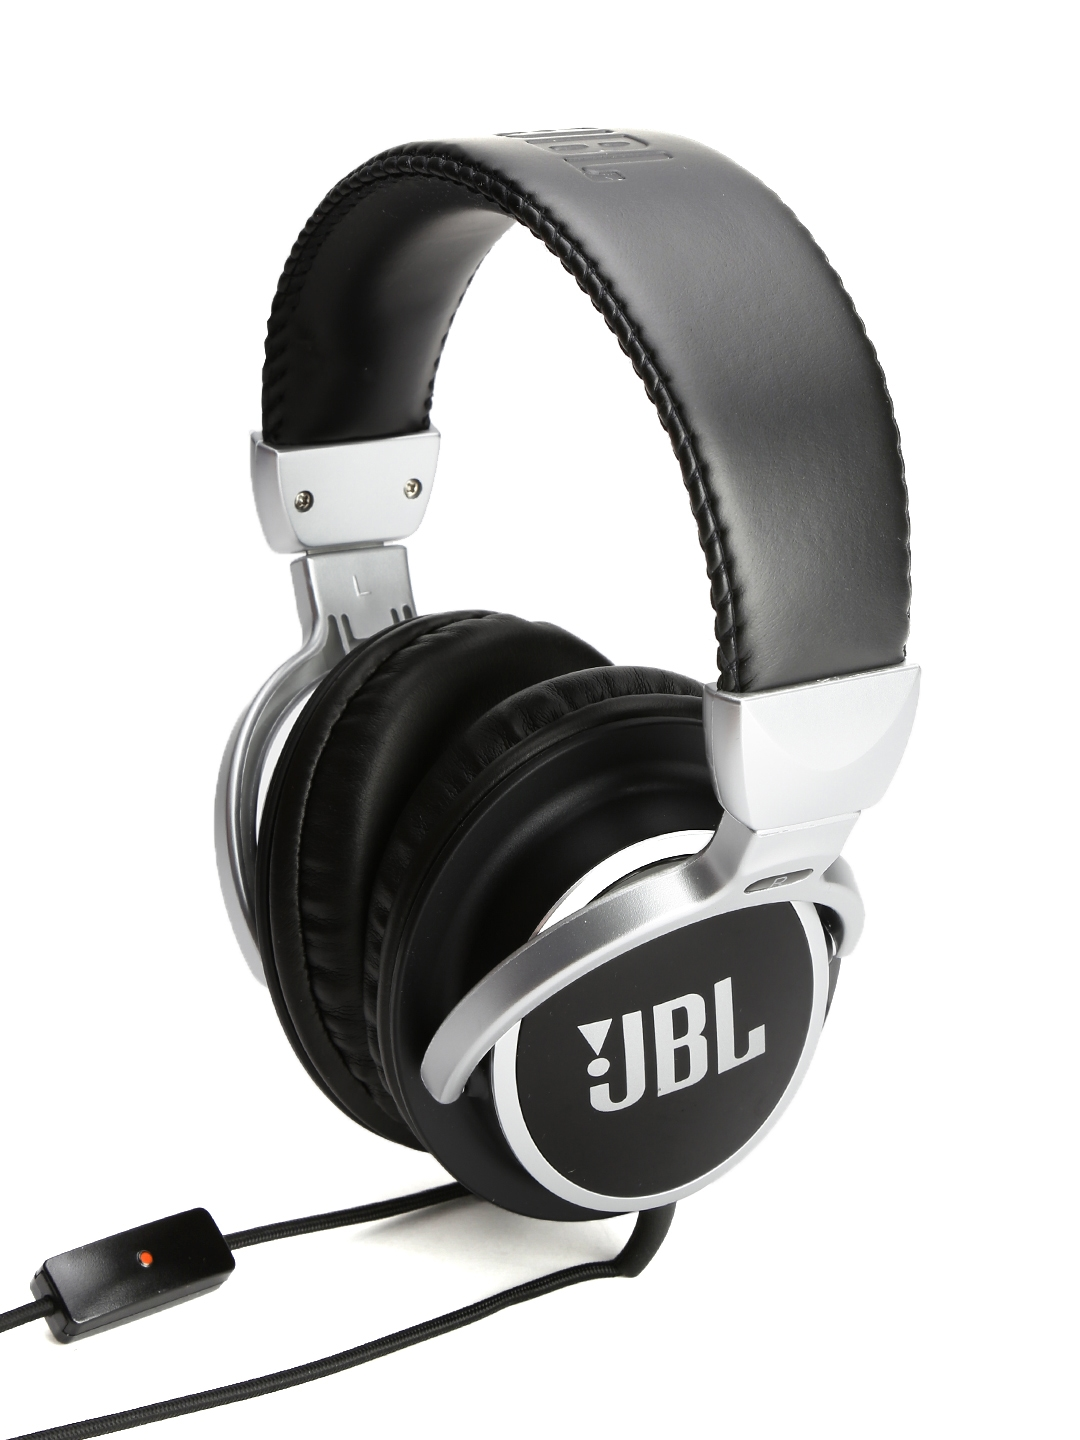 b5e47a96ae7 Buy JBL C700SI Black Over Ear Headphones With Mic - Headphones for ...